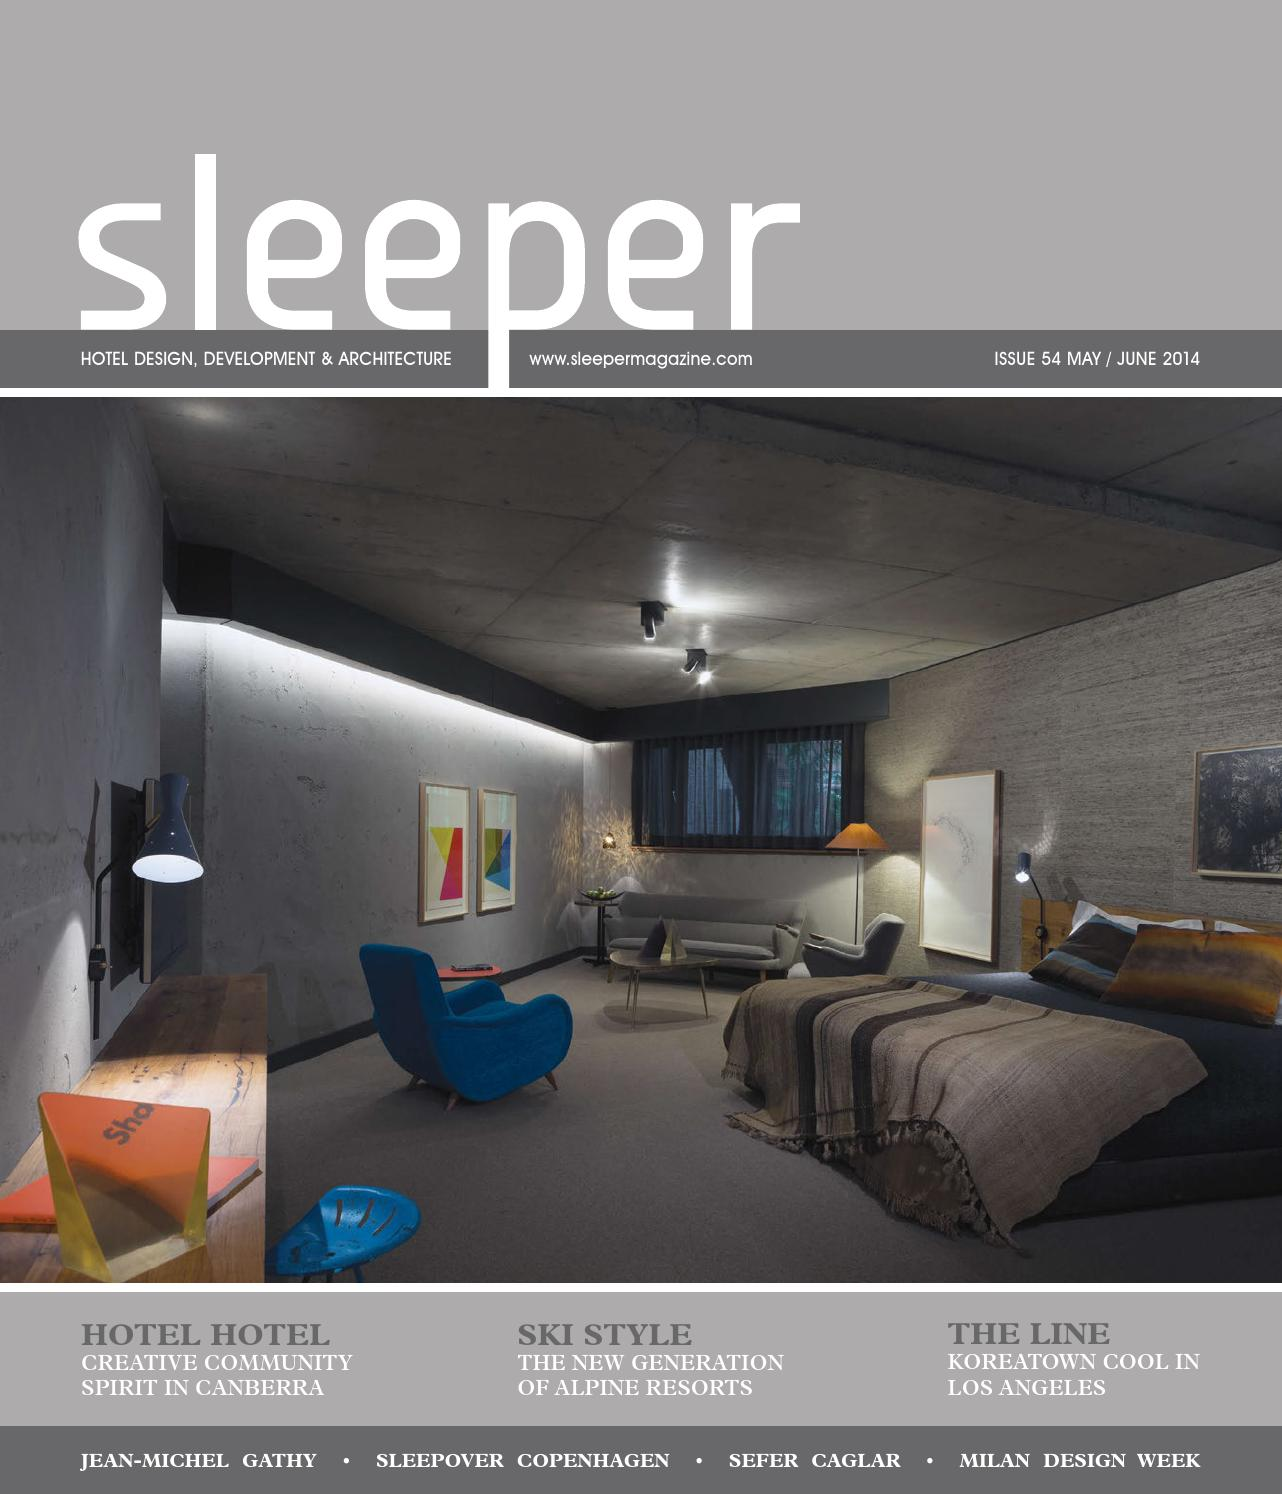 Sleeper May June 2014 Issue 54 By Mondiale Media Issuu